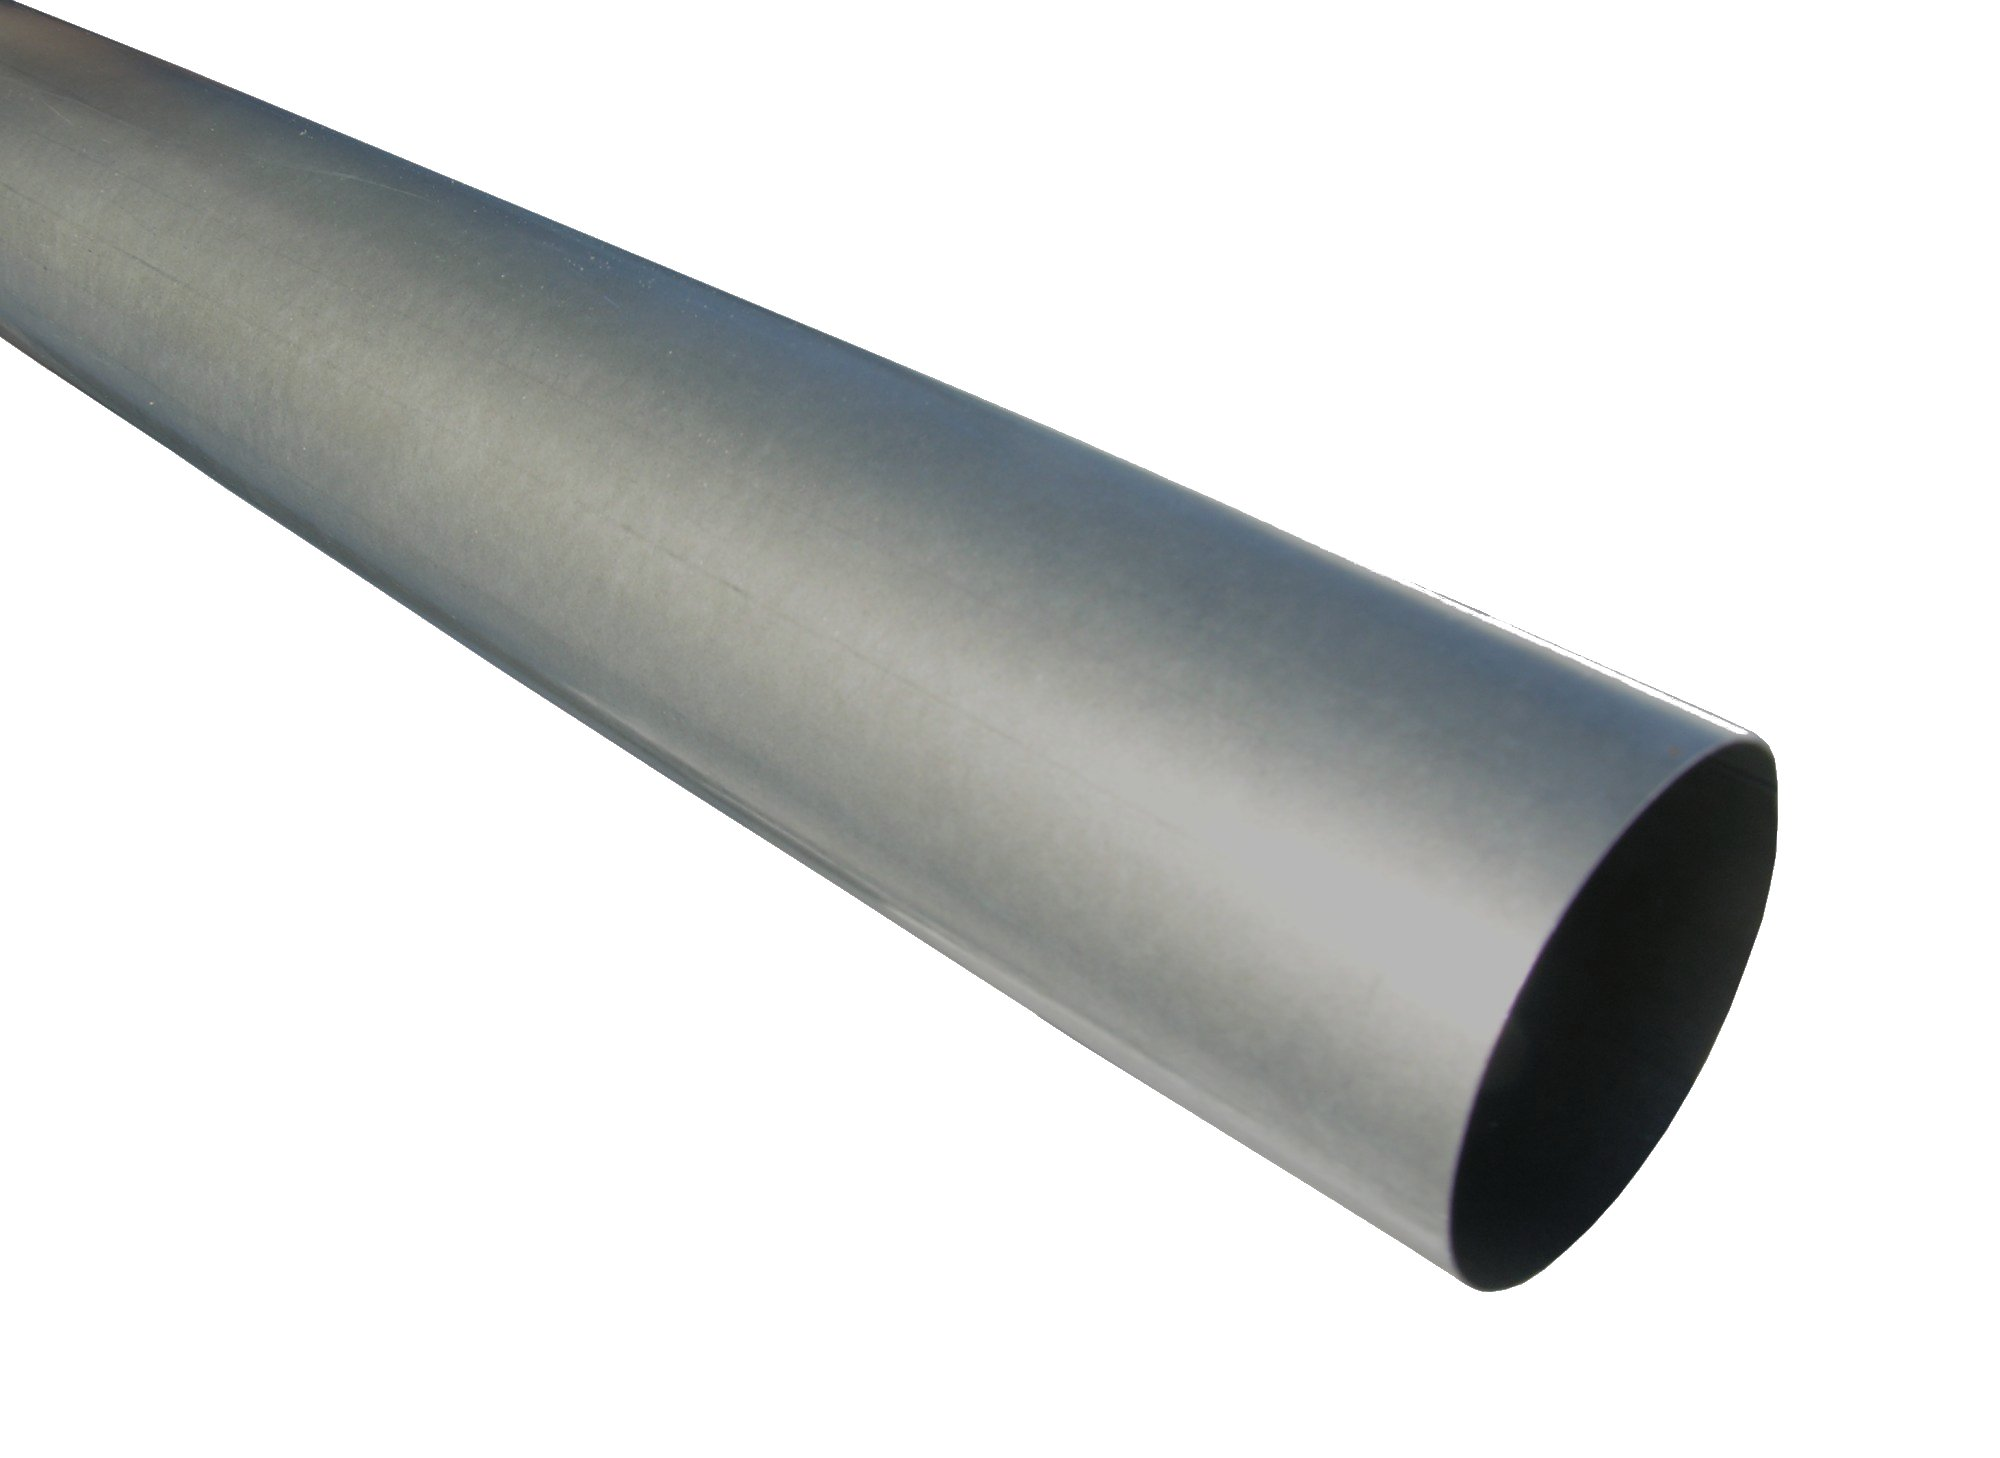 Plain Round Paint Grip Steel Downspout Are Available In 3